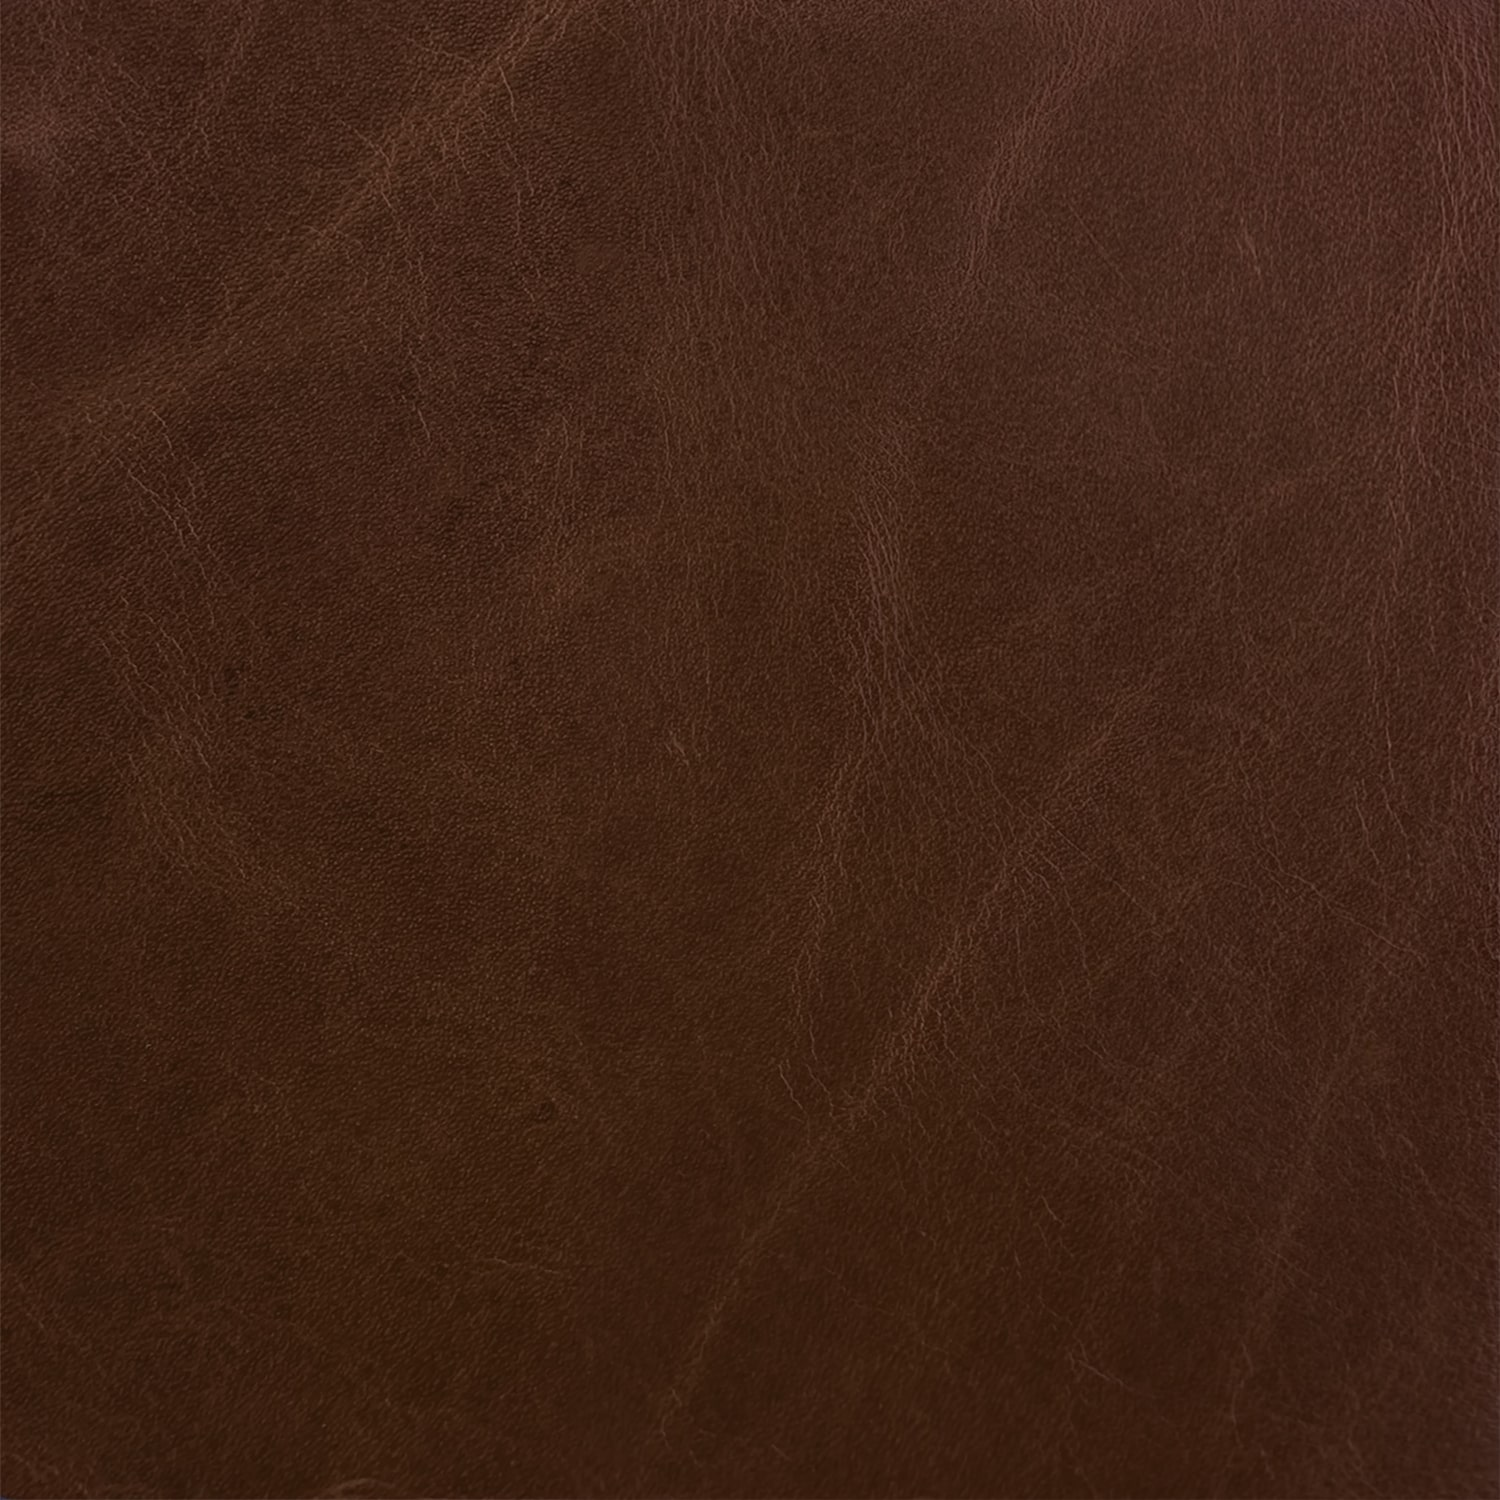 Flagstaff: Java (grade G): #FLG1600<br>Unique distressed markings, permiated with wax, rich vibrant color; light protection